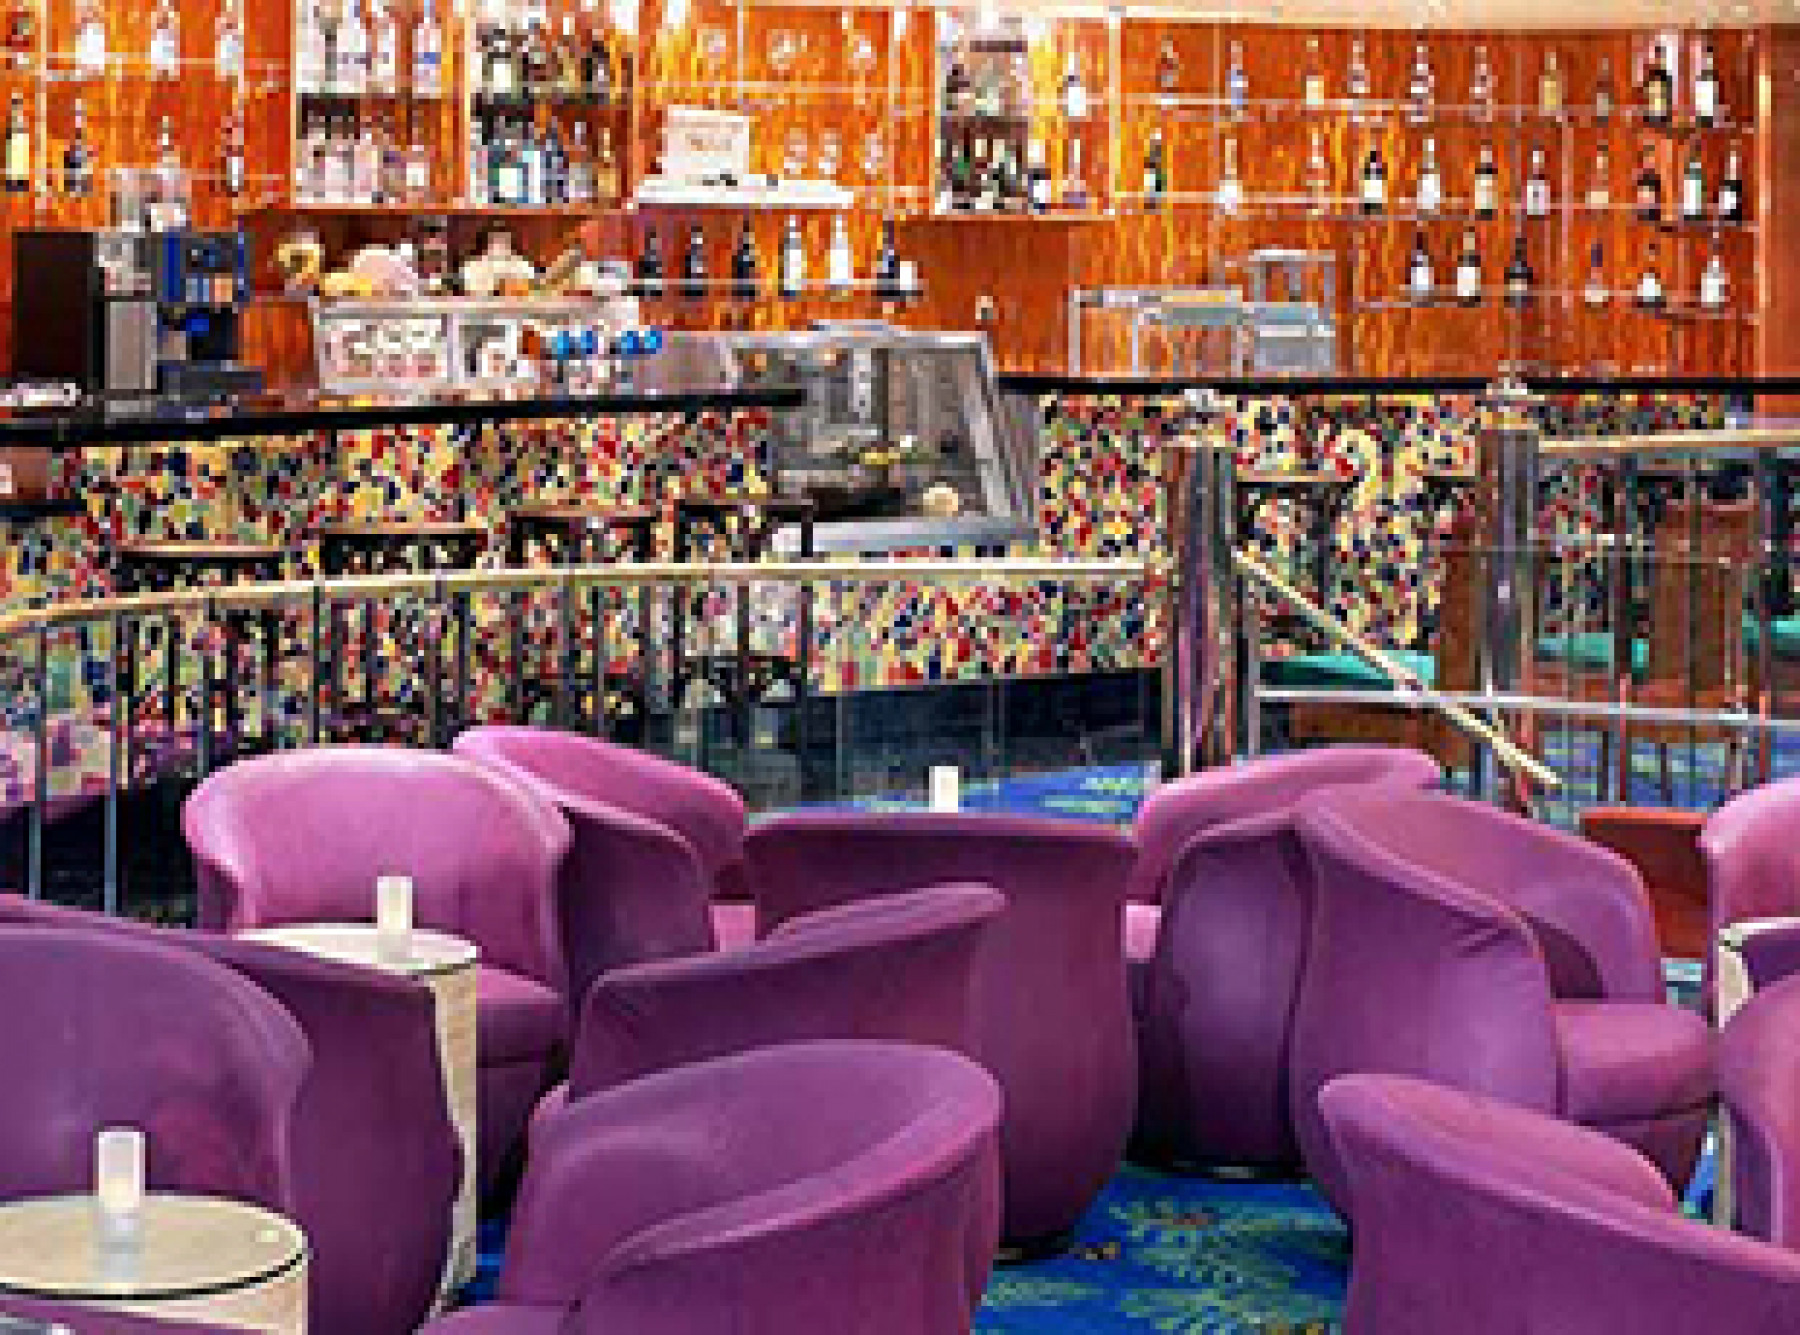 Norwegian Cruise Line Norwegian Jewel Interior Moderno Churrascaria.jpg